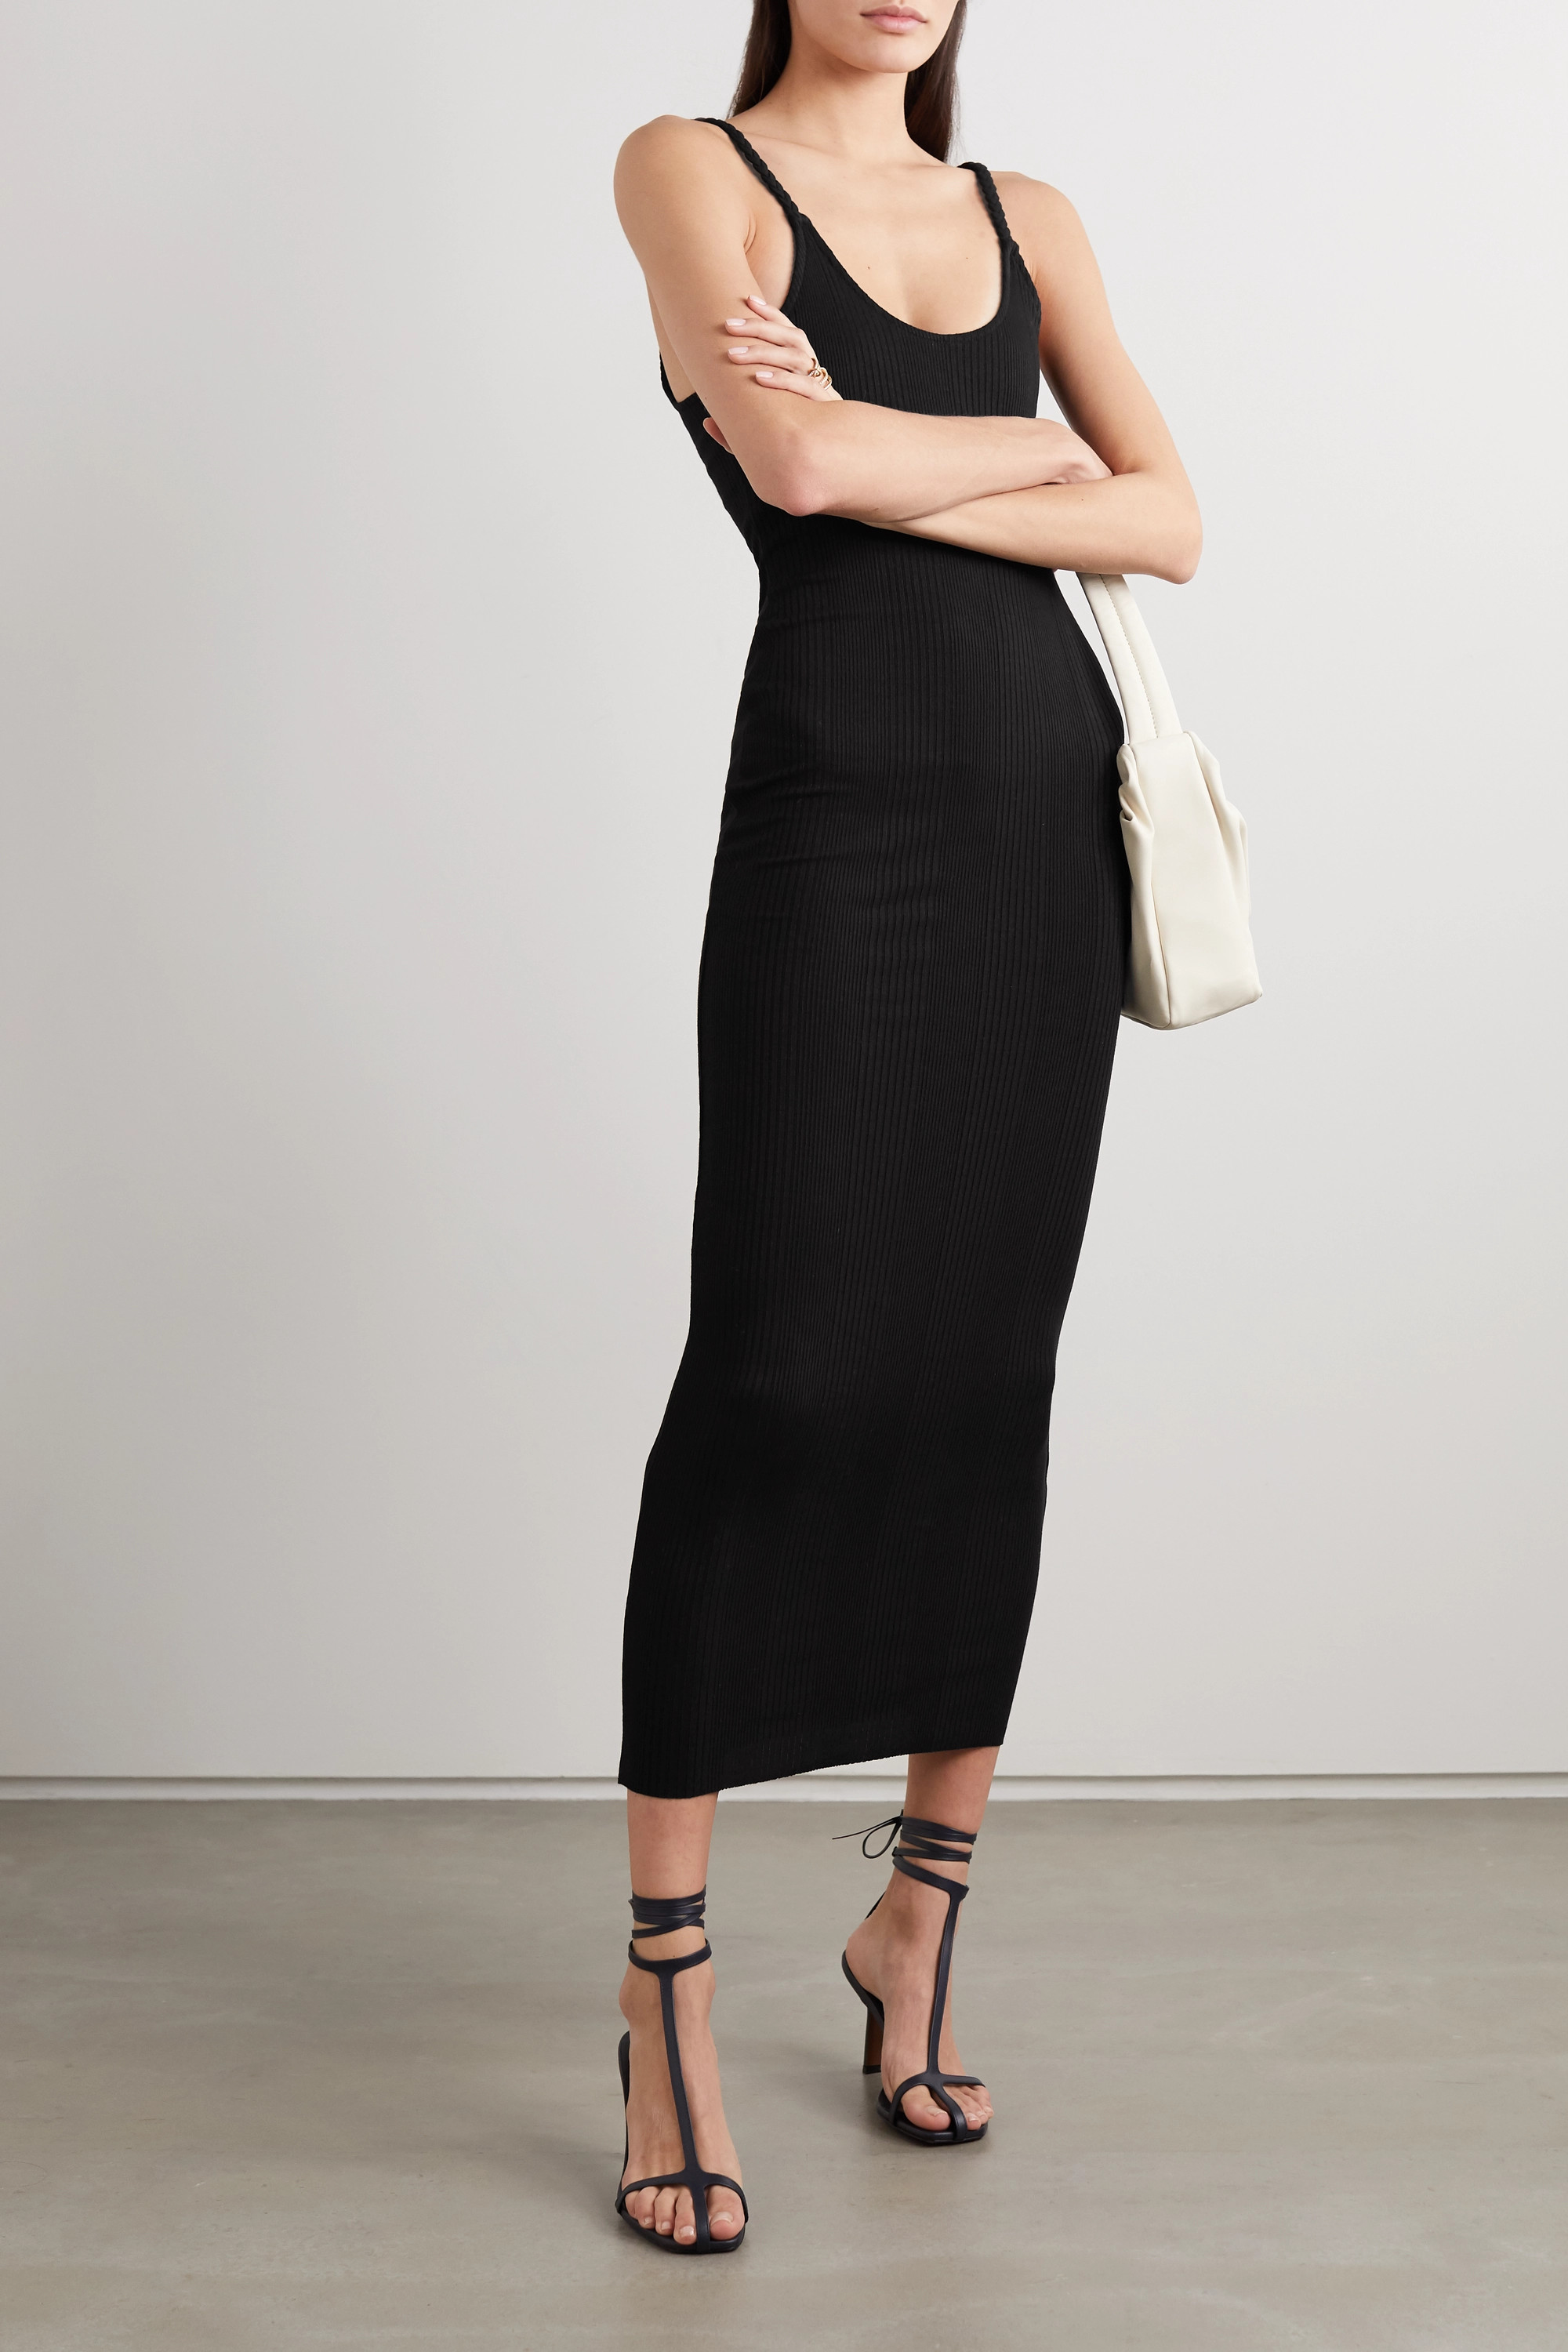 The Range Division braided ribbed stretch-jersey midi dress